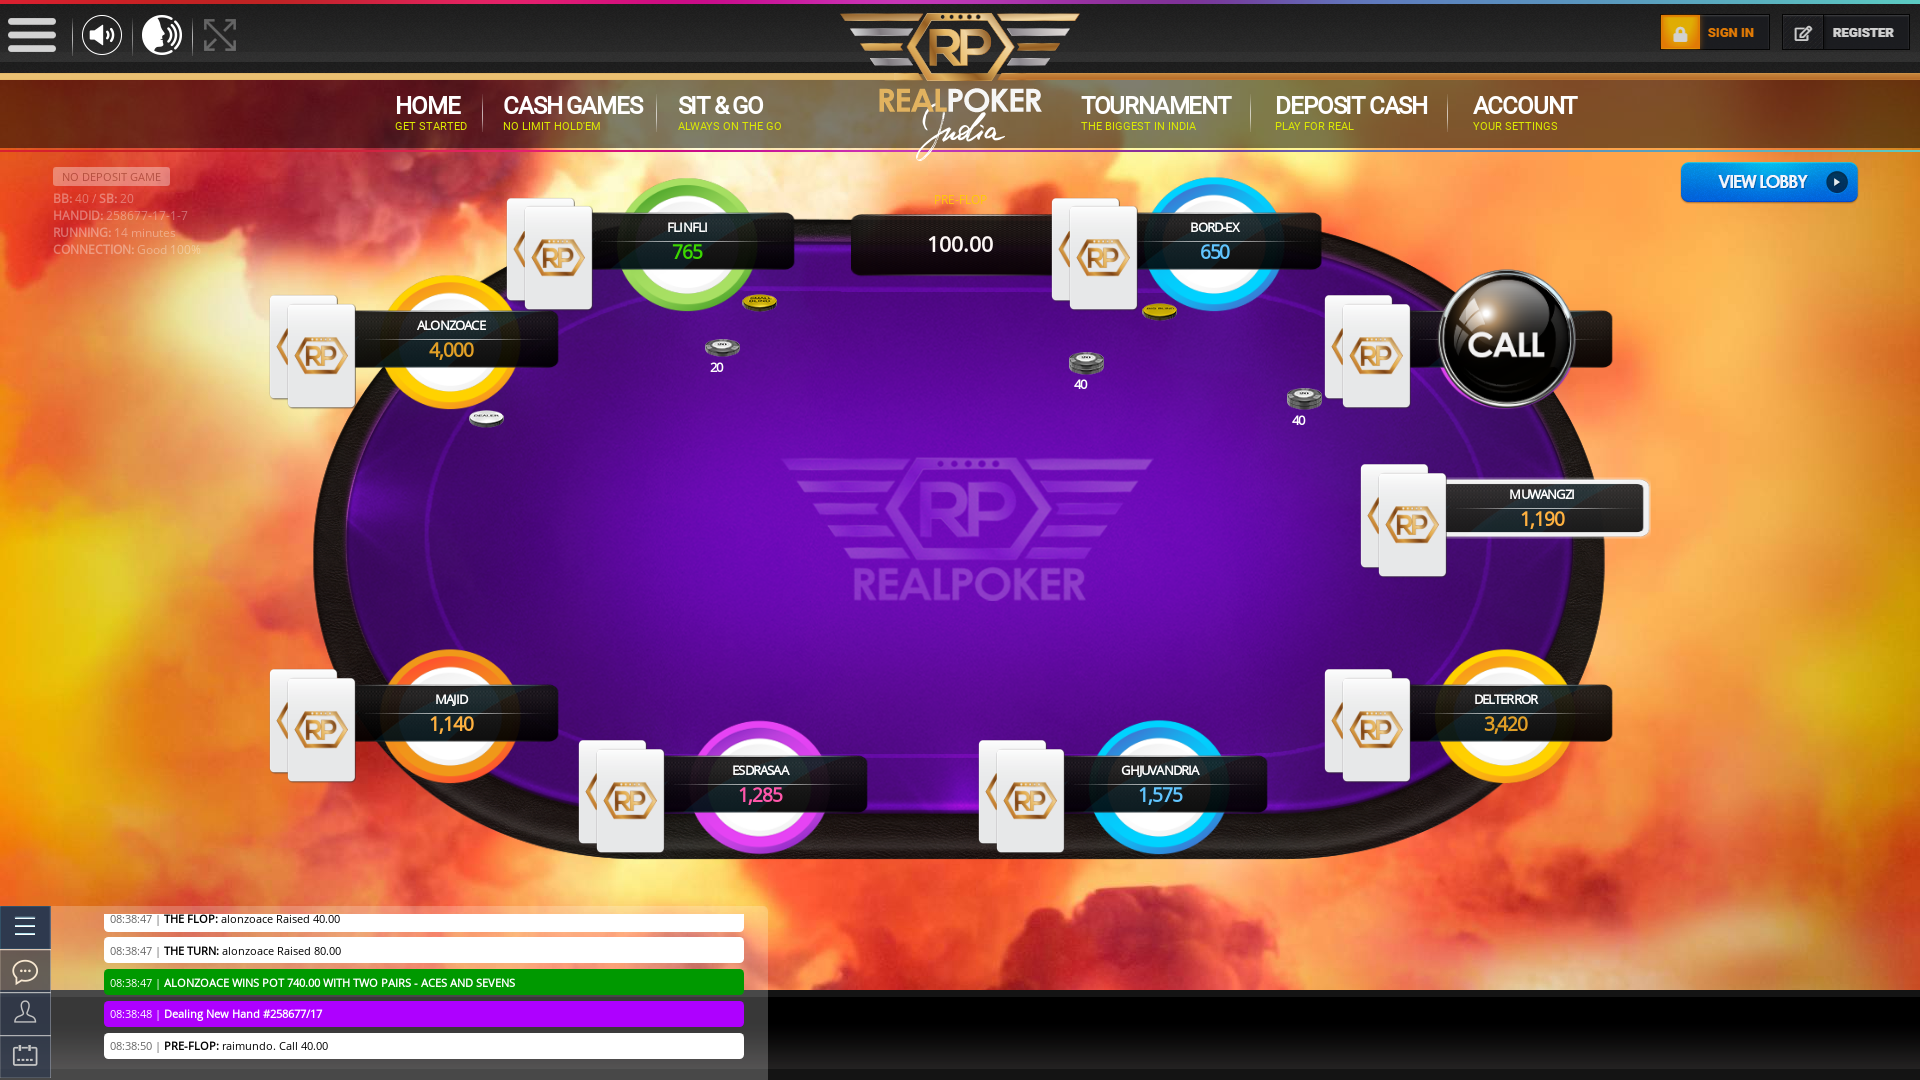 Jor Bagh, New Delhi Online Poker from November